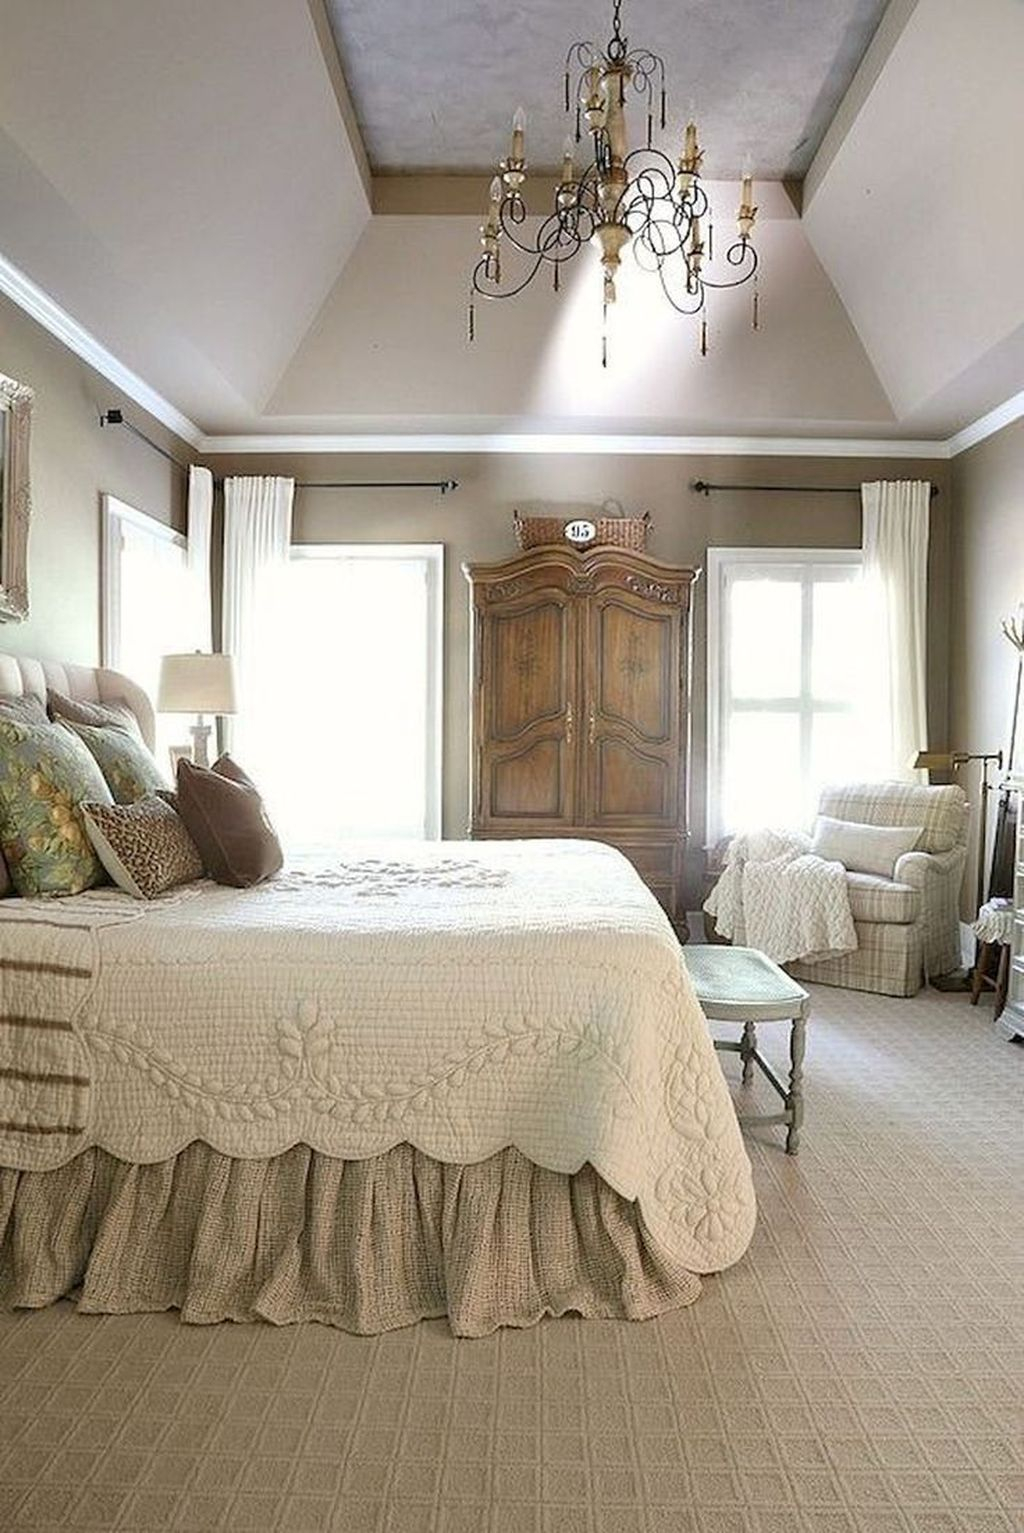 Cool French Country Master Bedroom Design Ideas With Farmhouse Style 11